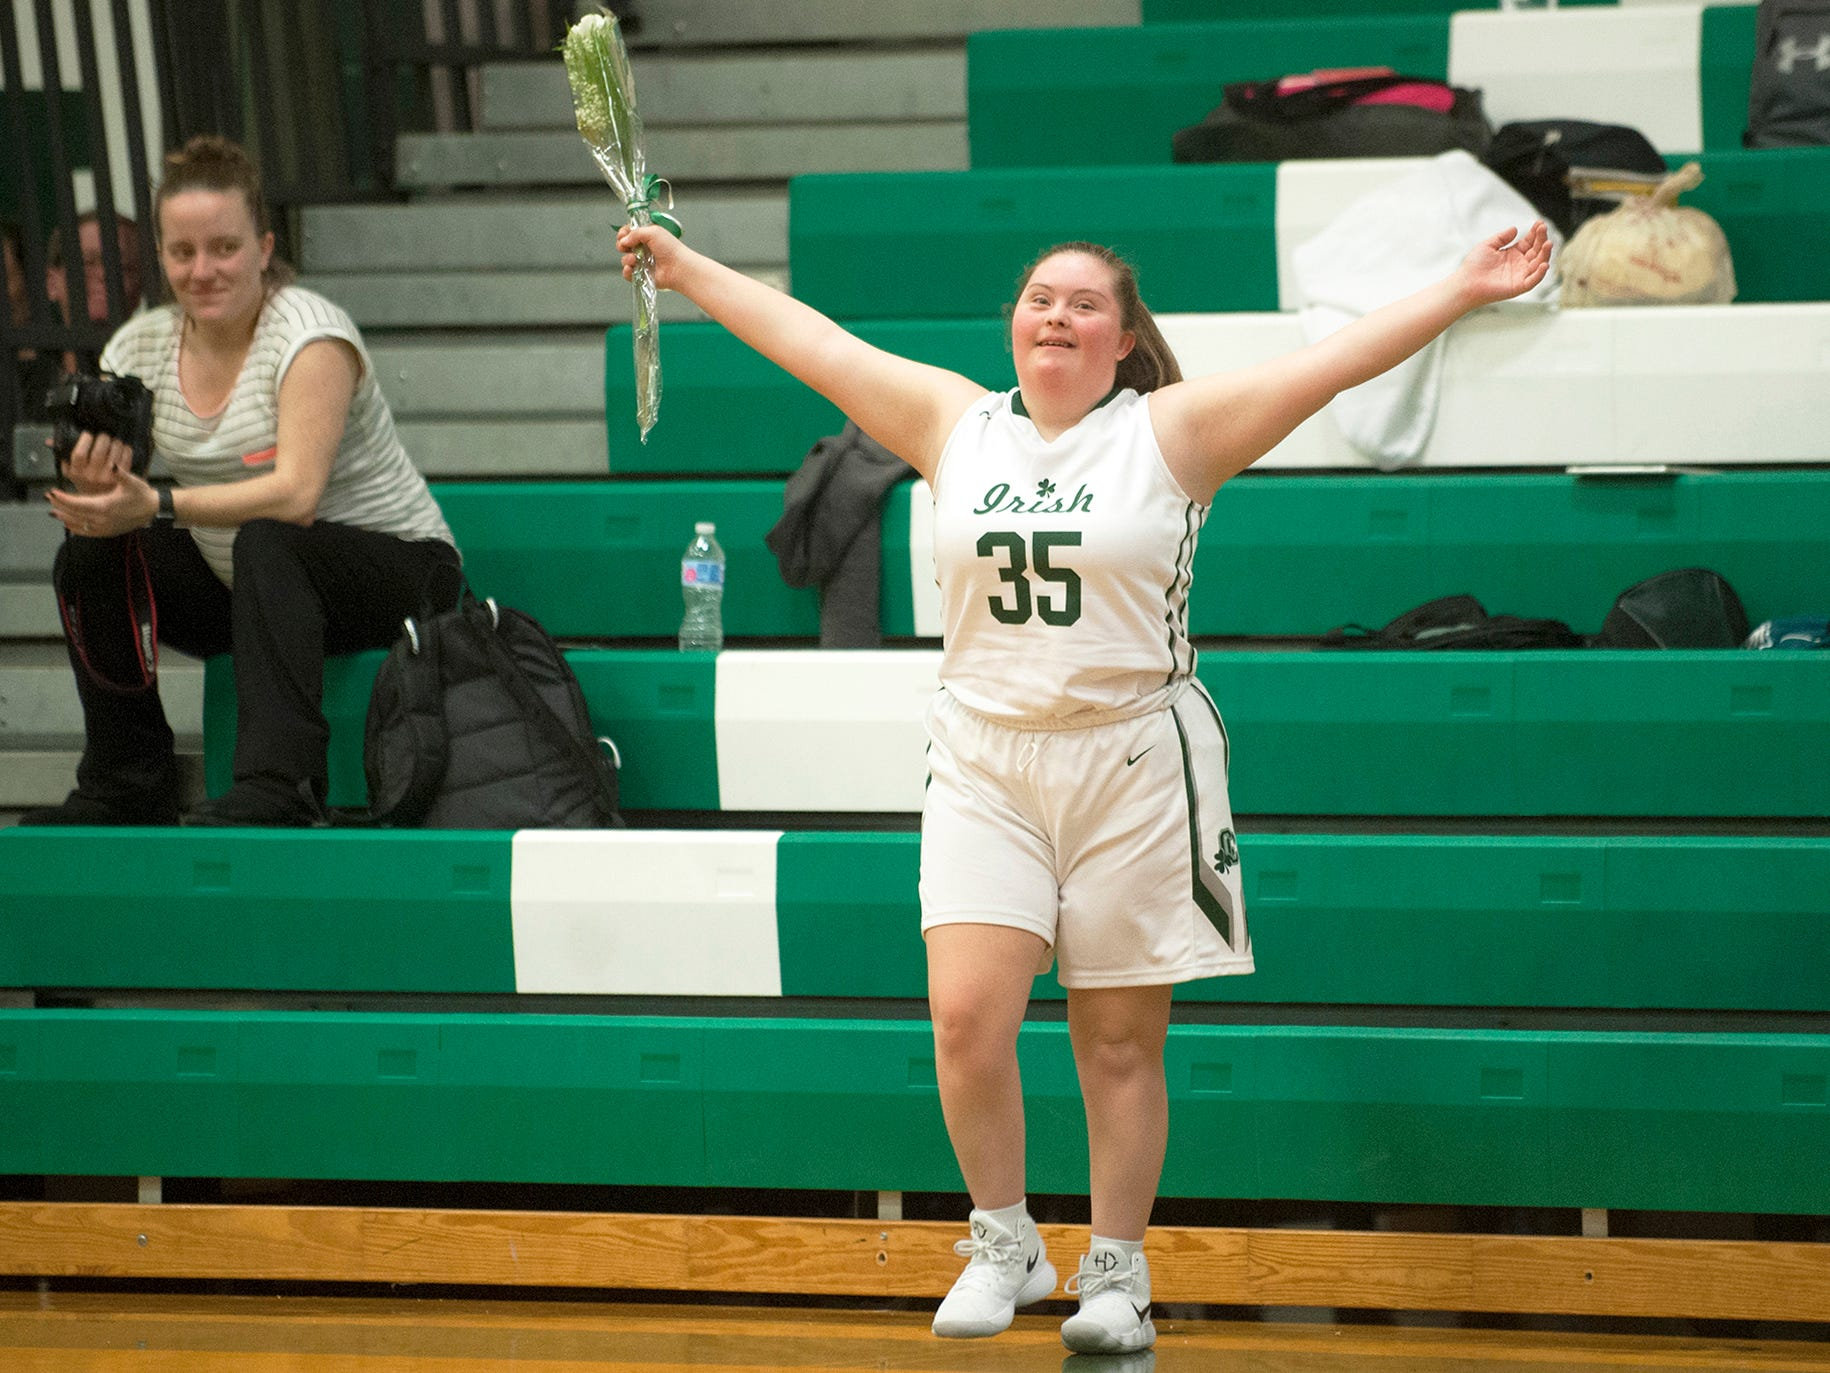 Kate Spadaro,  a senior at Camden Catholic High School with Downs Syndrome, is introduced prior to a varsity girls basketball game between Camden Catholic and Lenape, played at Camden Catholic High School in Cherry Hill on February 15, 2018.  Spadaro, who has been a basketball player, manager, cheerleader and arguably the team's biggest supporter during her four years at Camden Catholic, was announced as one of the five starters and scored a basket during the first quarter of the game.